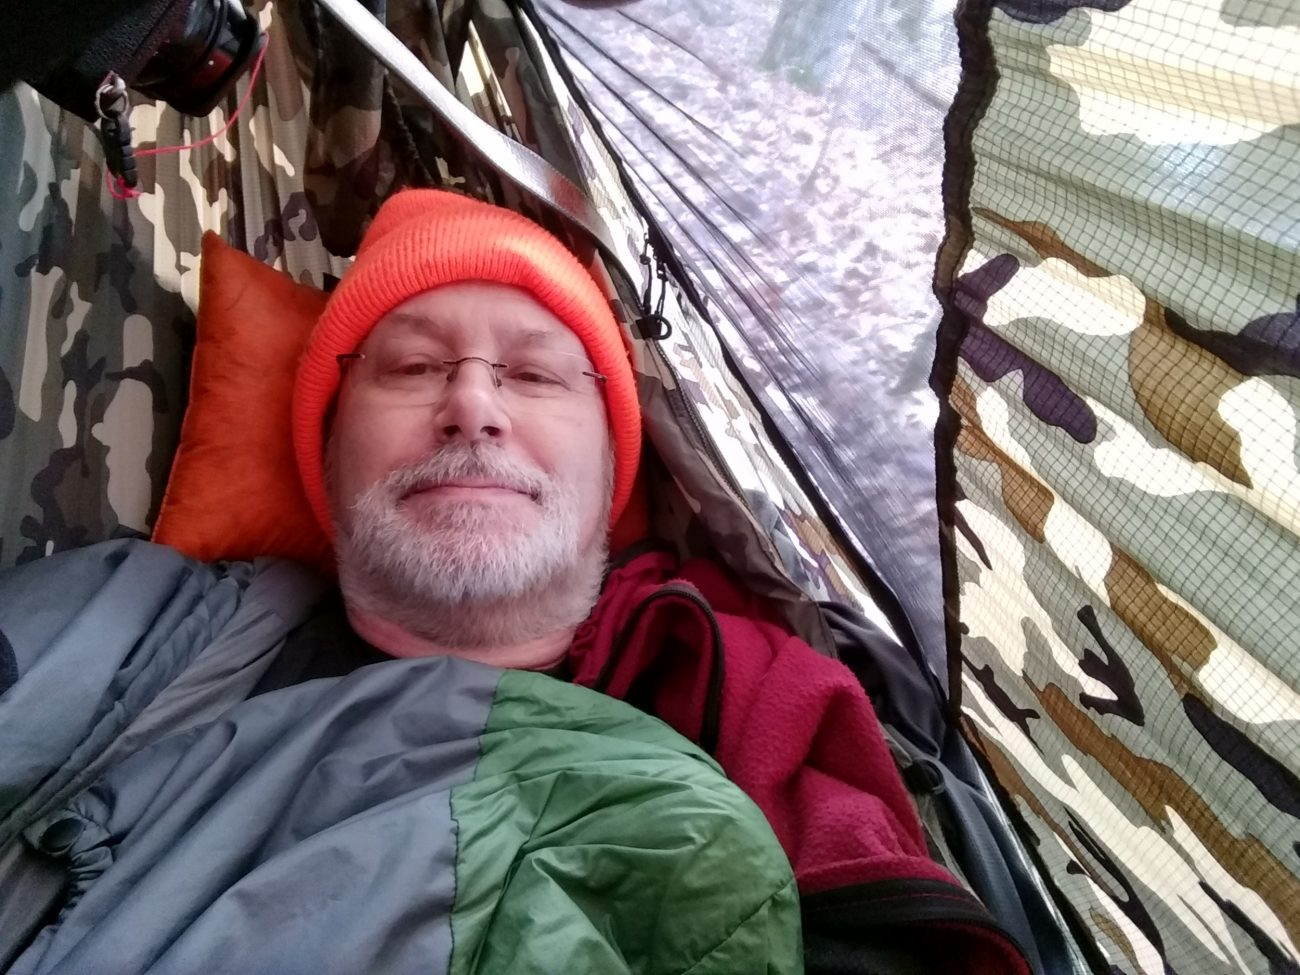 Gary Allman in a Dutchware Gear Chameleon Hammock with winter cover.